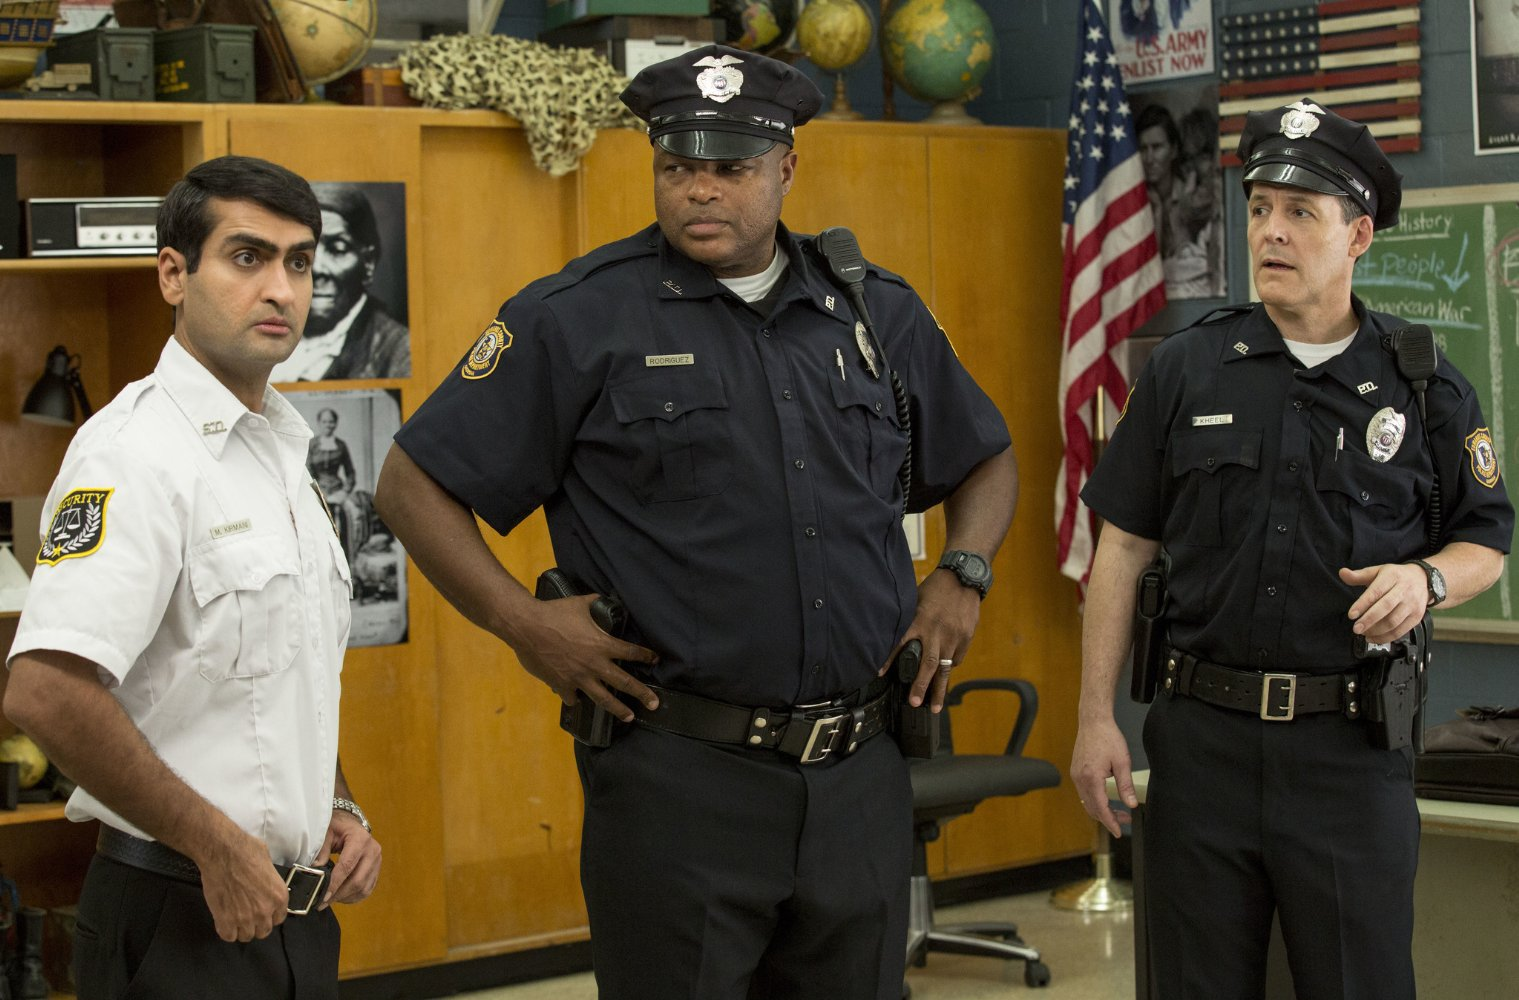 New Fist Fight Clips And Images The Entertainment Factor